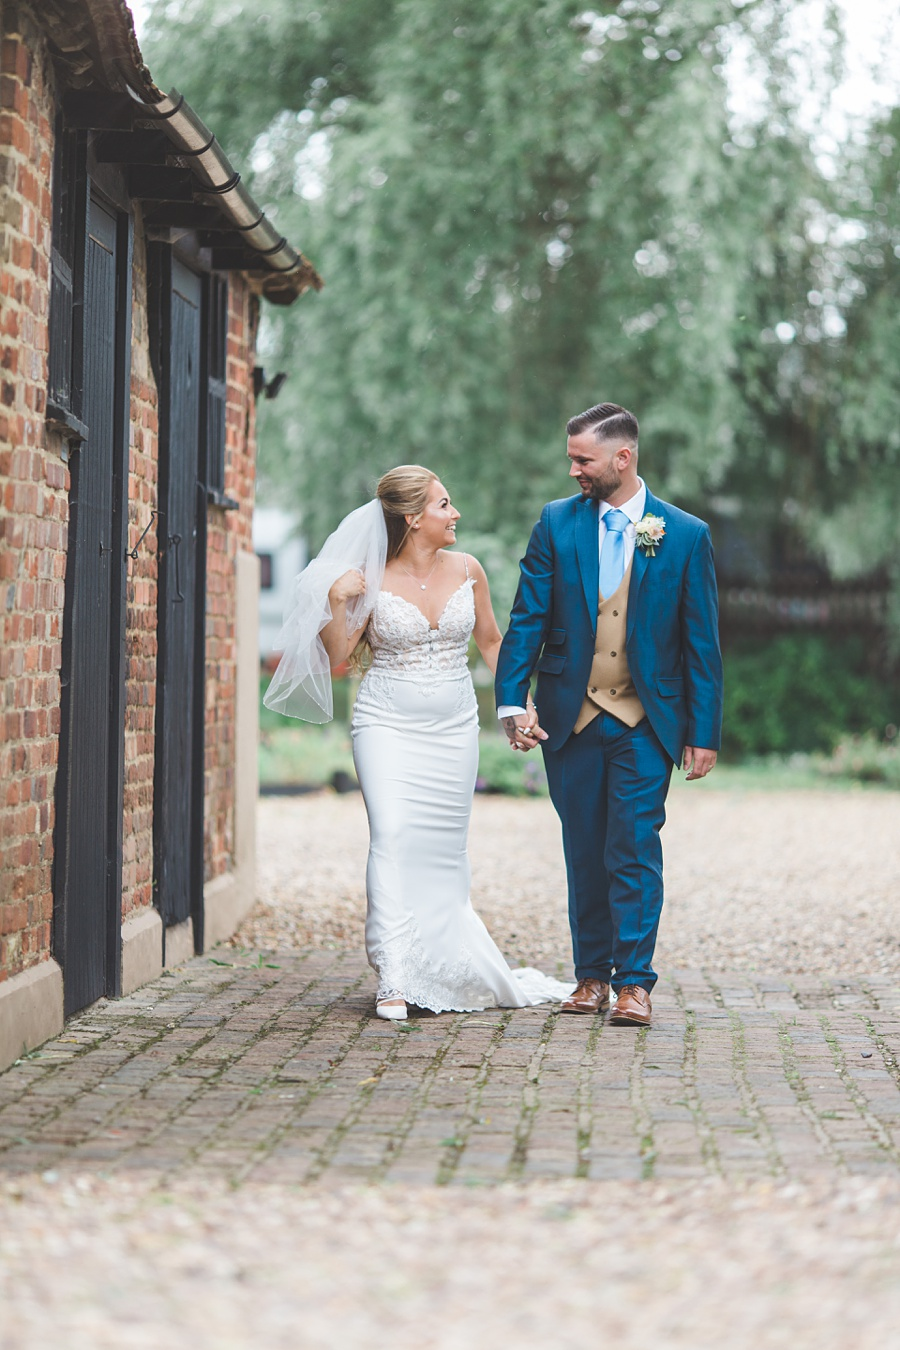 wedding-photography-at-The-Priory-Little-Wymondley